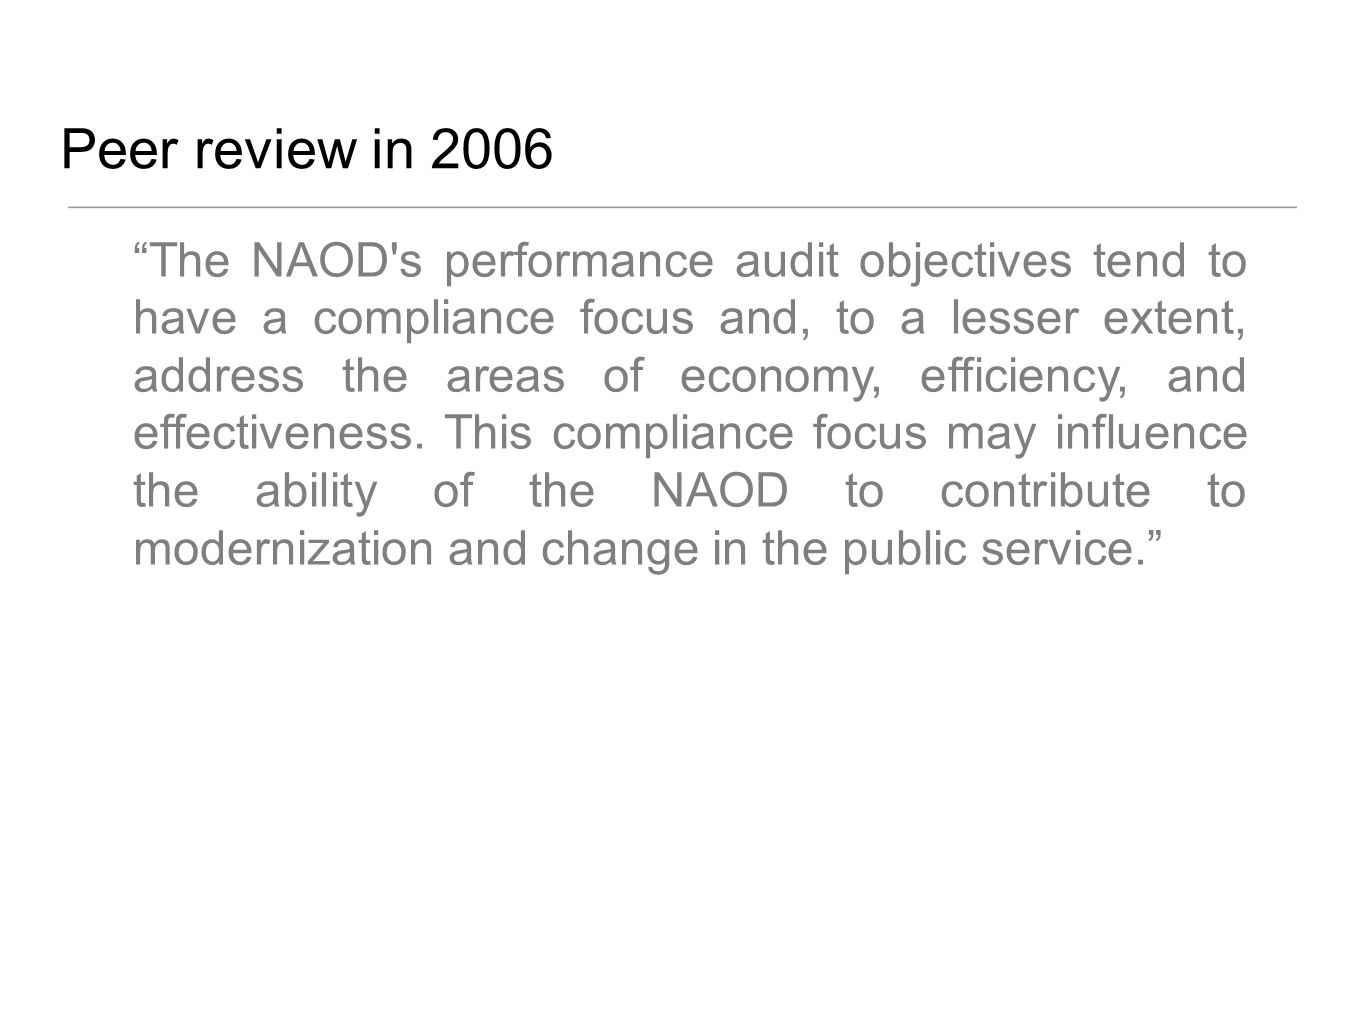 Peer review in 2006 The NAOD s performance audit objectives tend to have a compliance focus and, to a lesser extent, address the areas of economy, efficiency, and effectiveness.